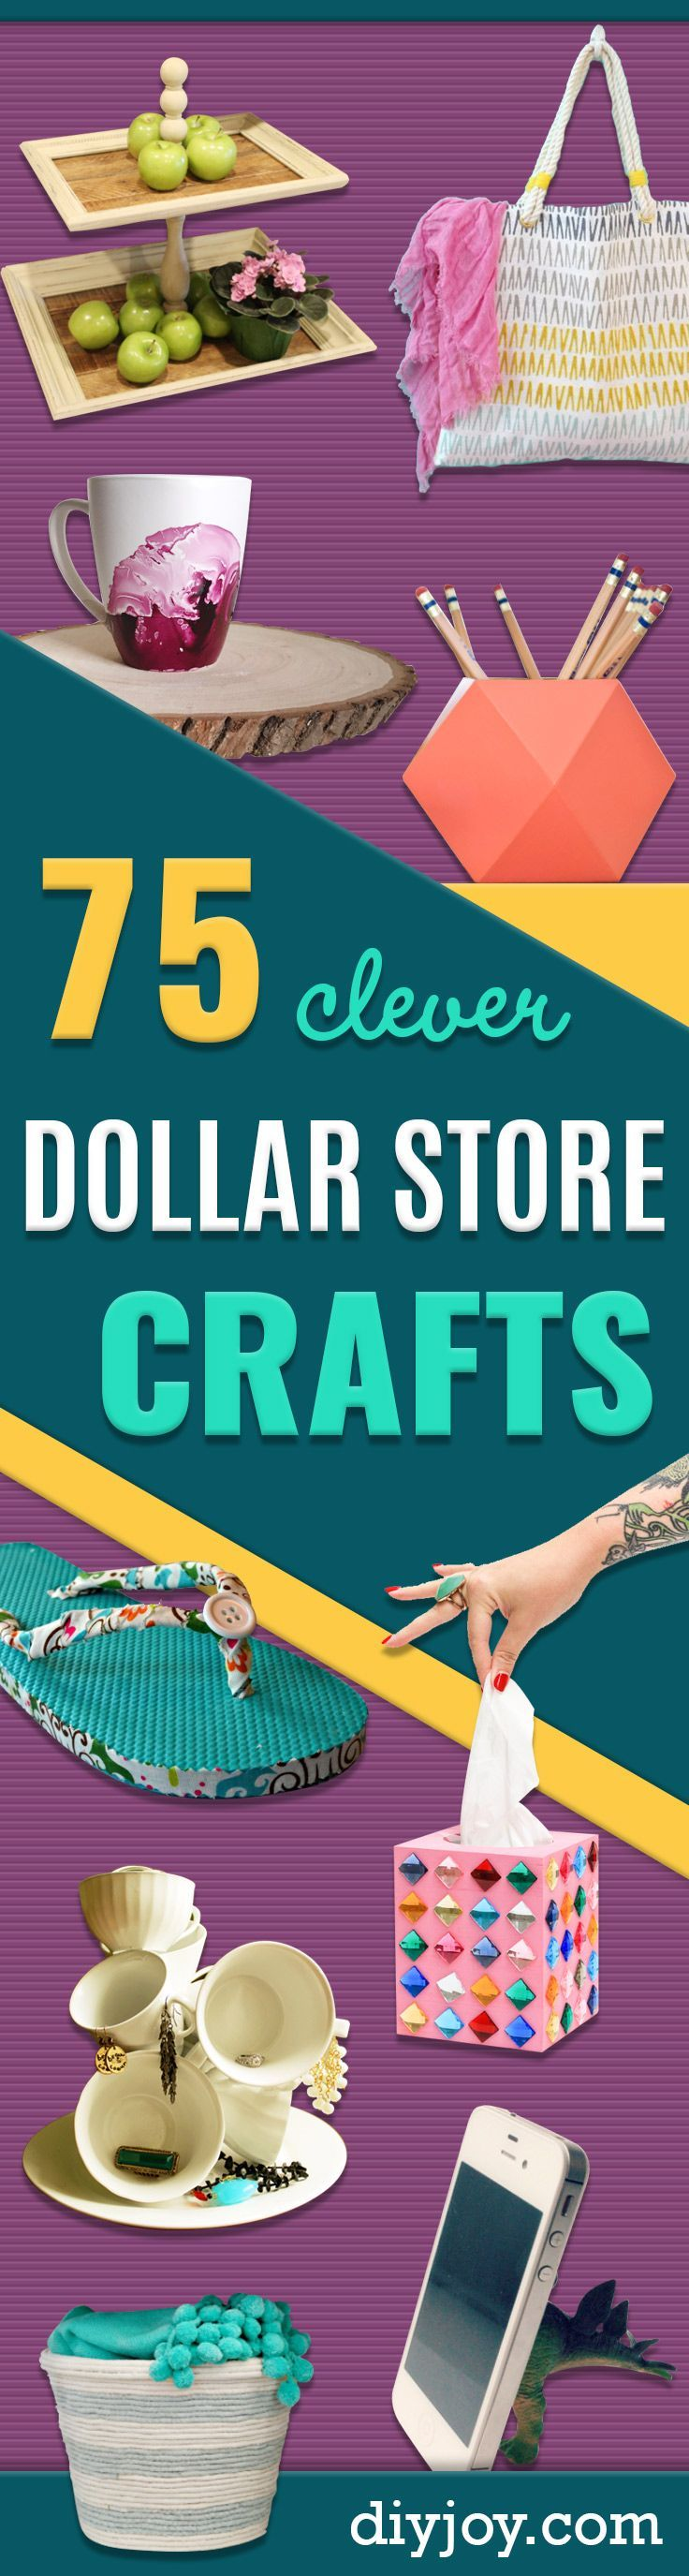 Best Christmas Gifts 2020 For 75 Dollars The 75 Absolute Best Dollar Store Crafts Ever in 2020 | Diy dollar